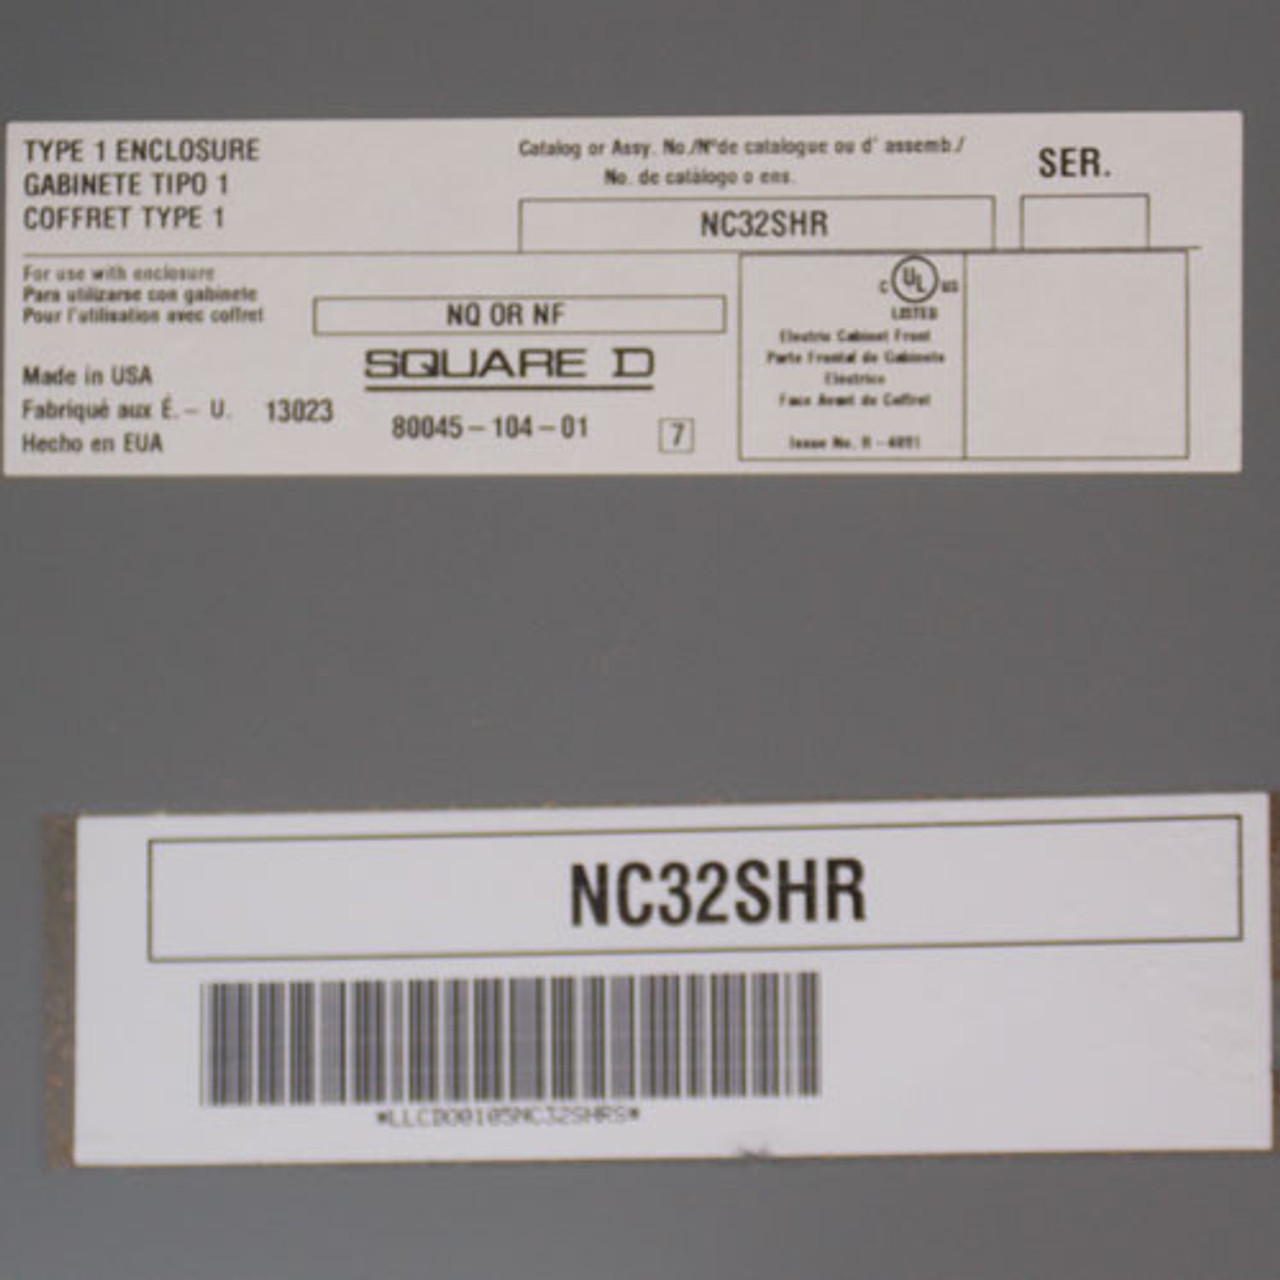 Square D 125A MLO 120/240V 1 Phase 3 Wire 30 SP NQ Panelboard N1 - New